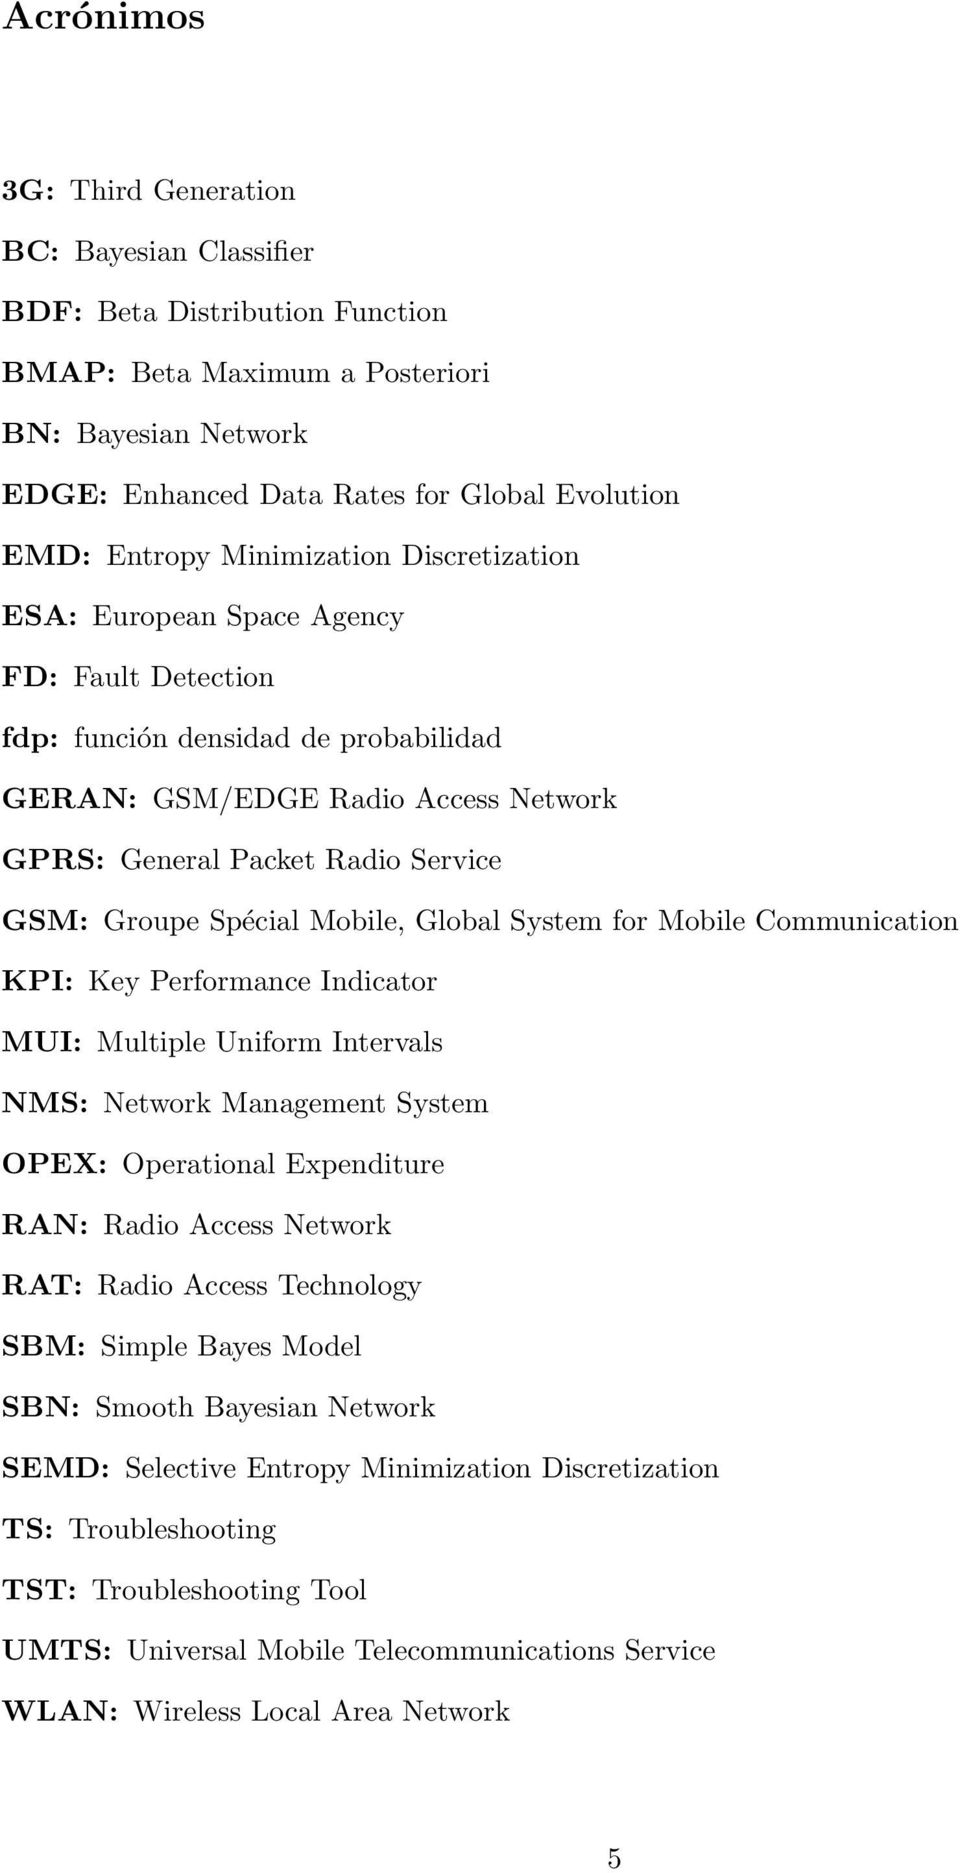 Spécial Mobile, Global System for Mobile Communication KPI: Key Performance Indicator MUI: Multiple Uniform Intervals NMS: Network Management System OPEX: Operational Expenditure RAN: Radio Access